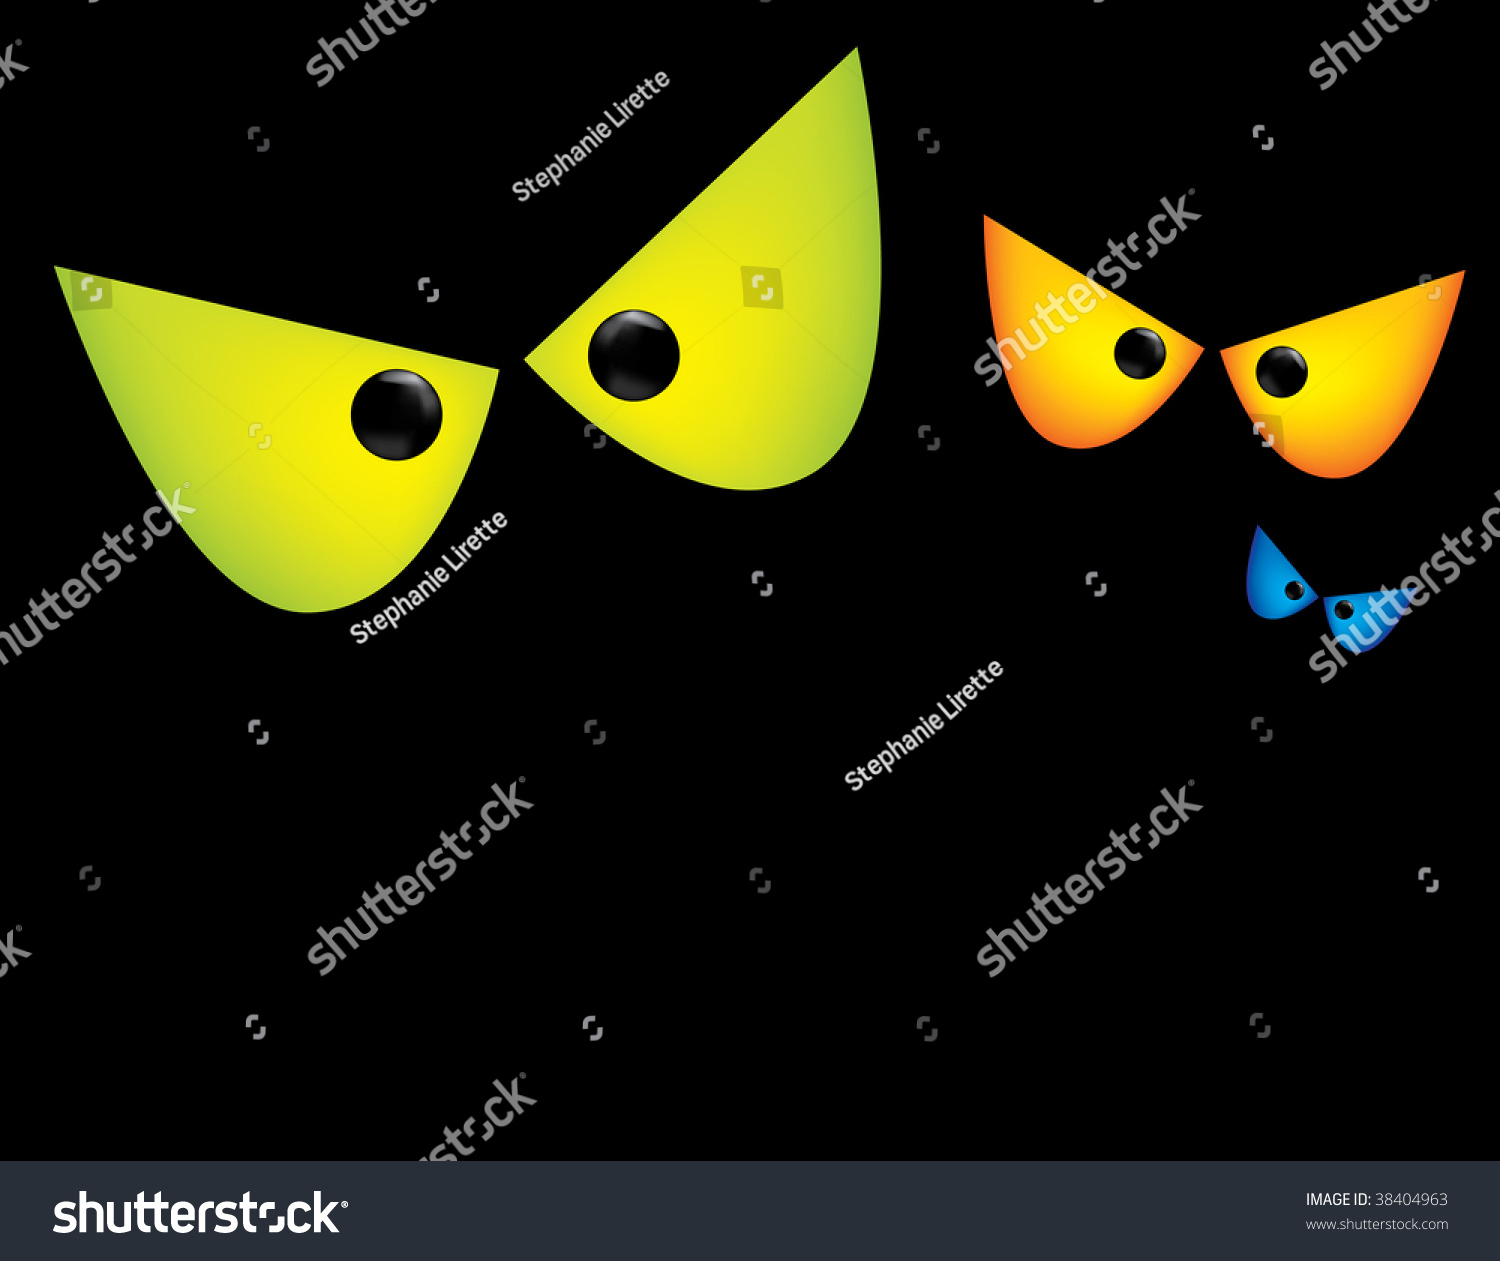 Scary eyes background stock vector 38404963 shutterstock - Scary yellow eyes ...